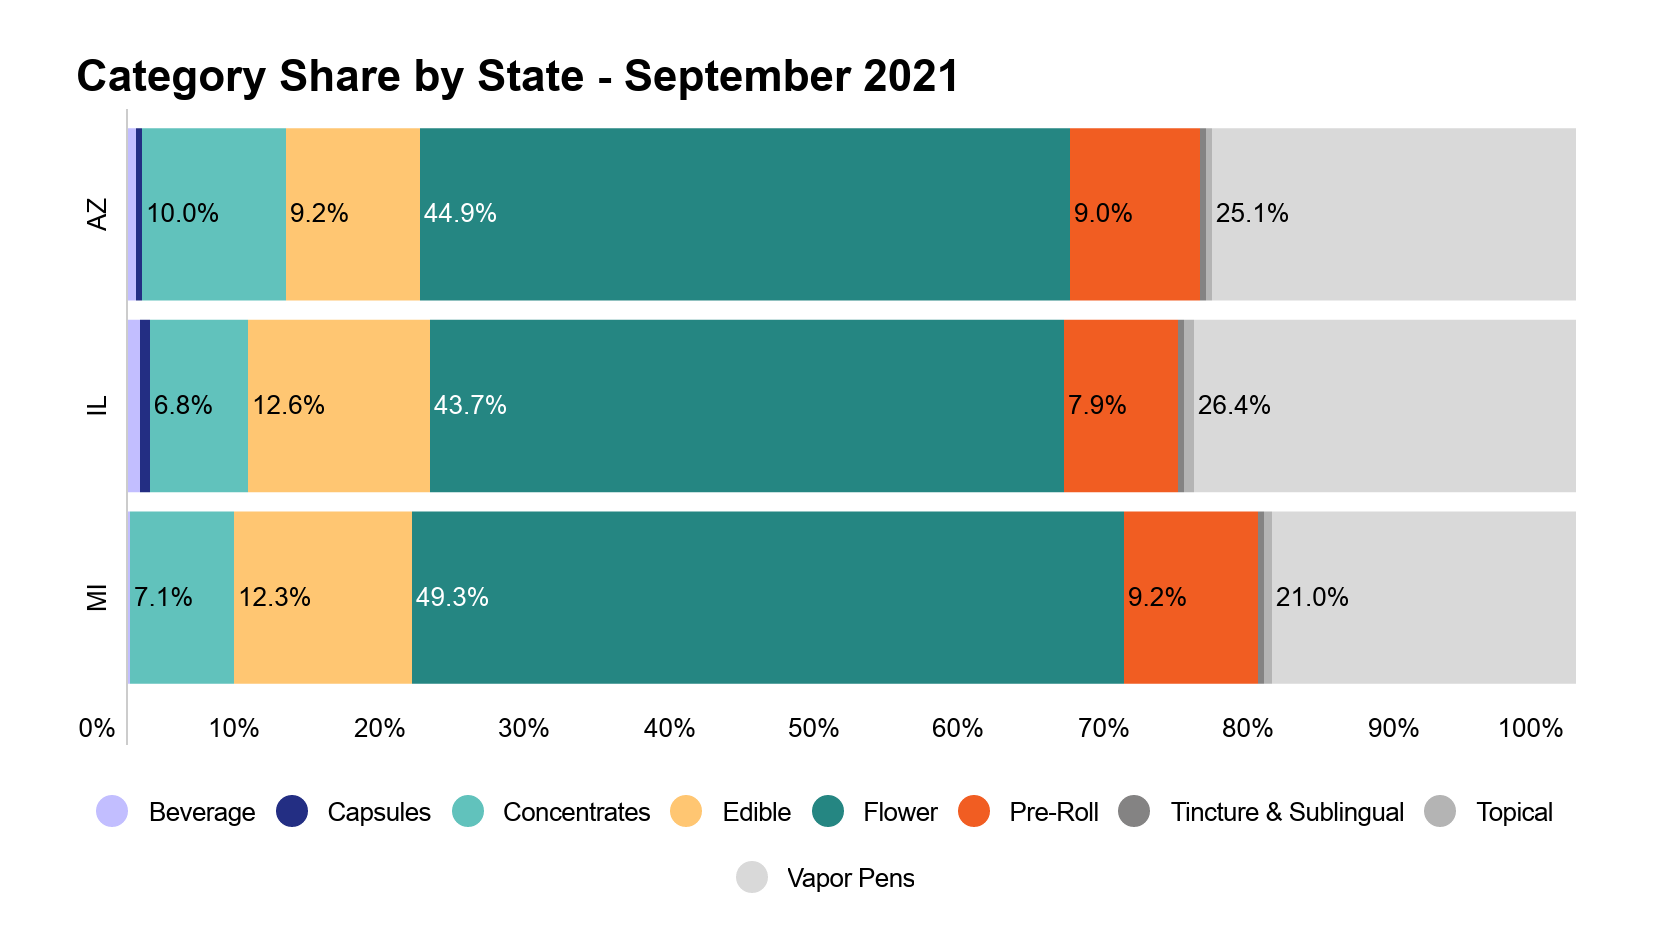 Arizona cannabis market report image 3: Cannabis category sales share by state